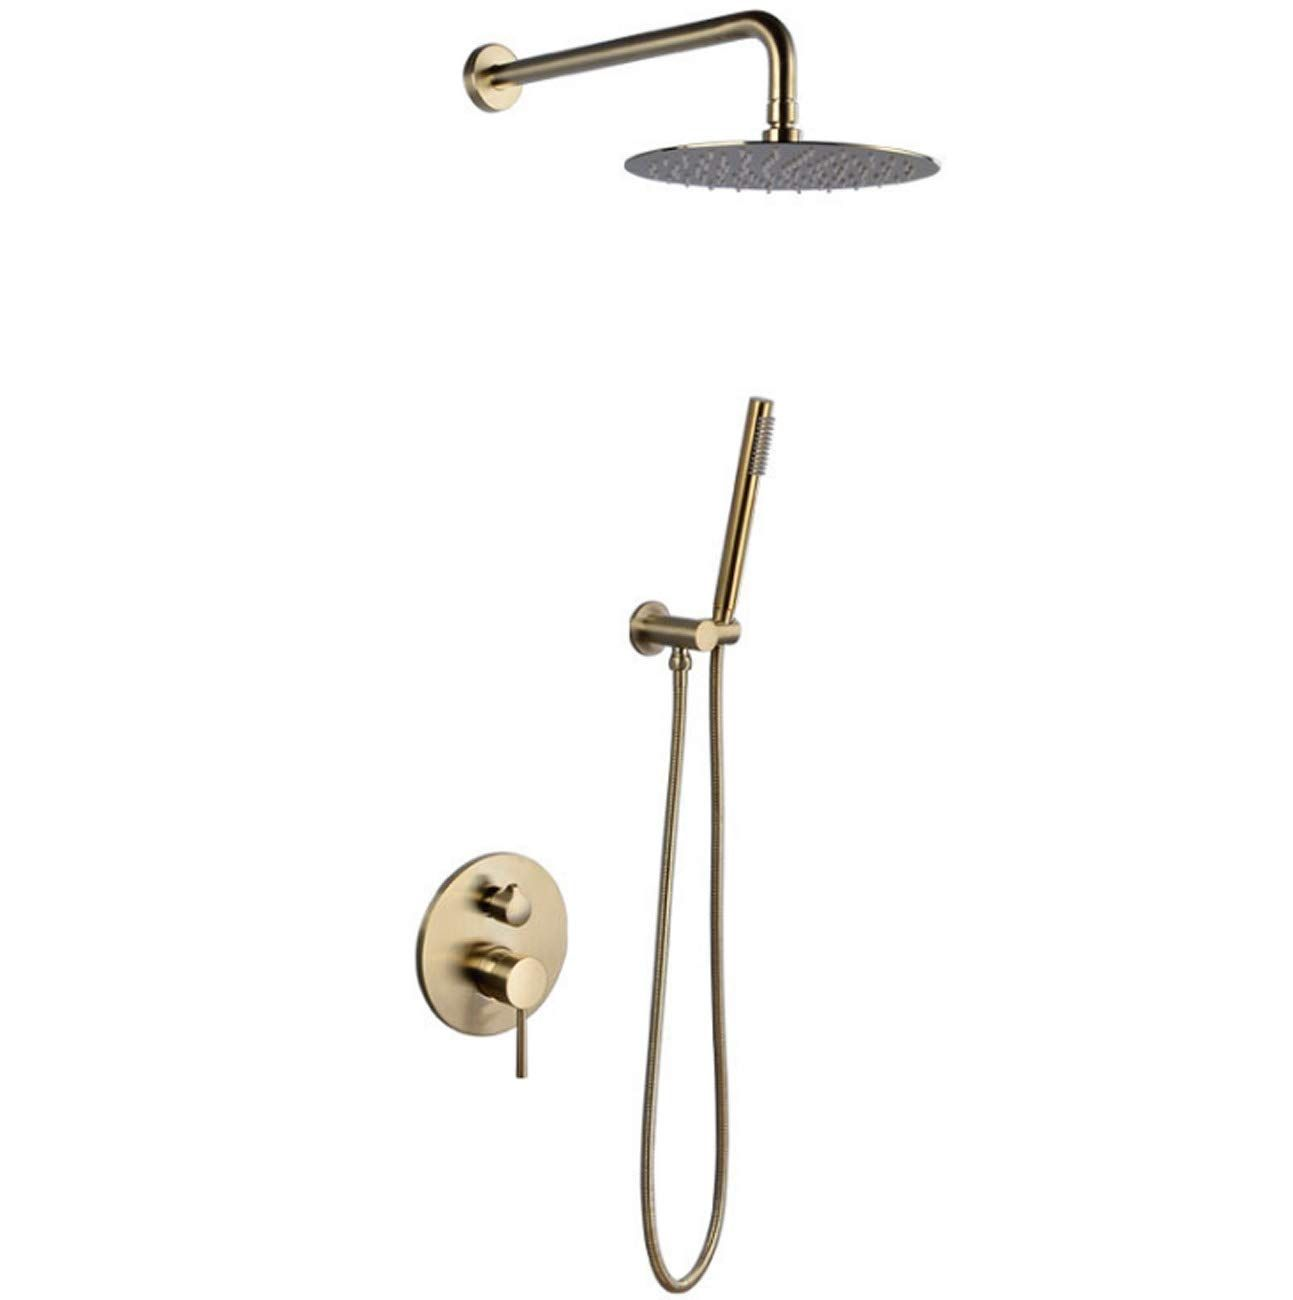 Concealed Shower Mixer Set For Bath Wall Mount Concealed Shower System With 10inch Stainless Steel Top Shower Handheld Shower Systems Hand Held Shower Shower